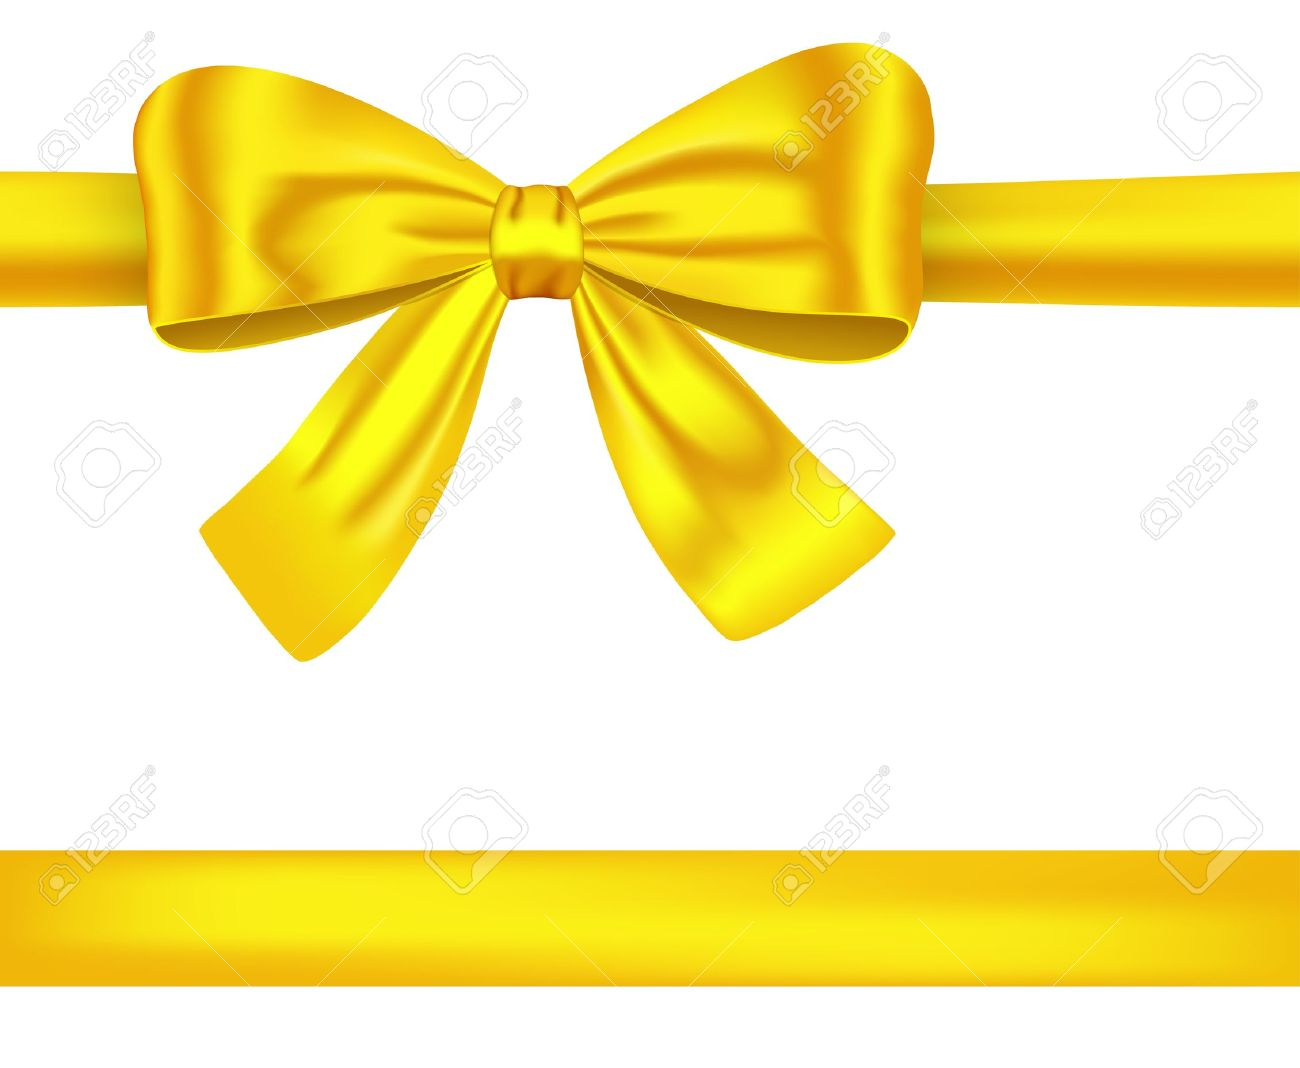 Golden satin gift ribbons with luxurious bow for decorations golden satin gift ribbons with luxurious bow for decorations illustration stock vector 12367906 negle Image collections